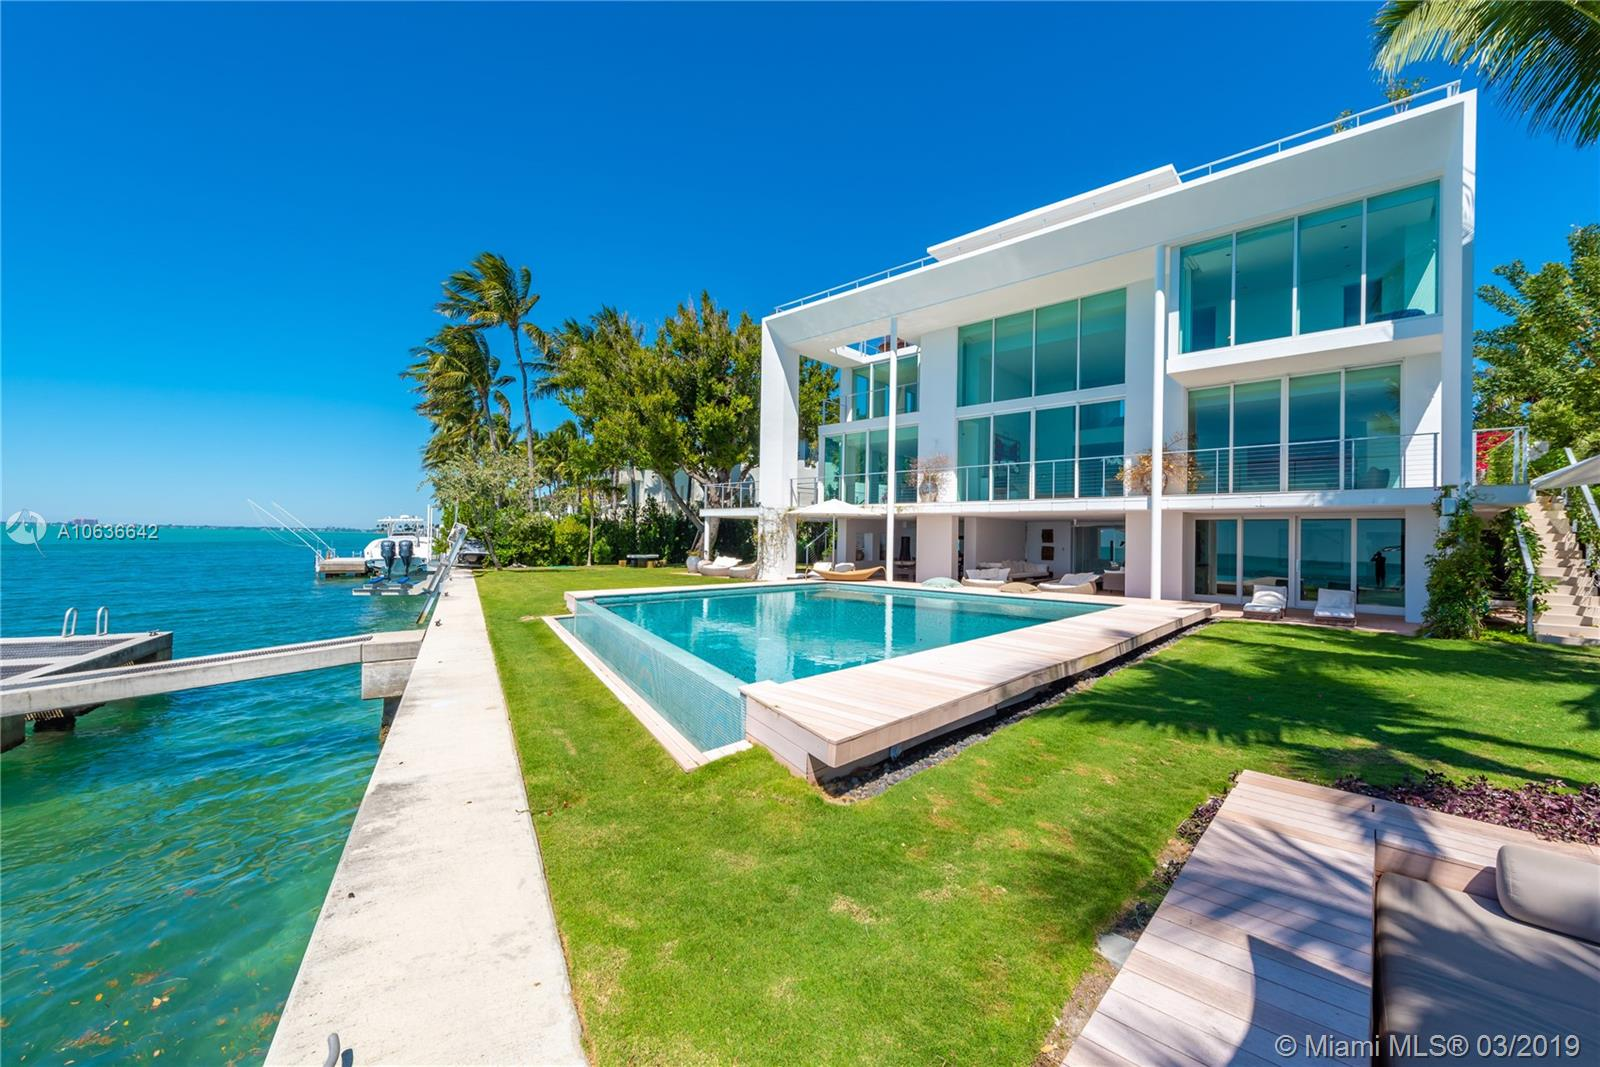 135 Luxury Homes For Sale